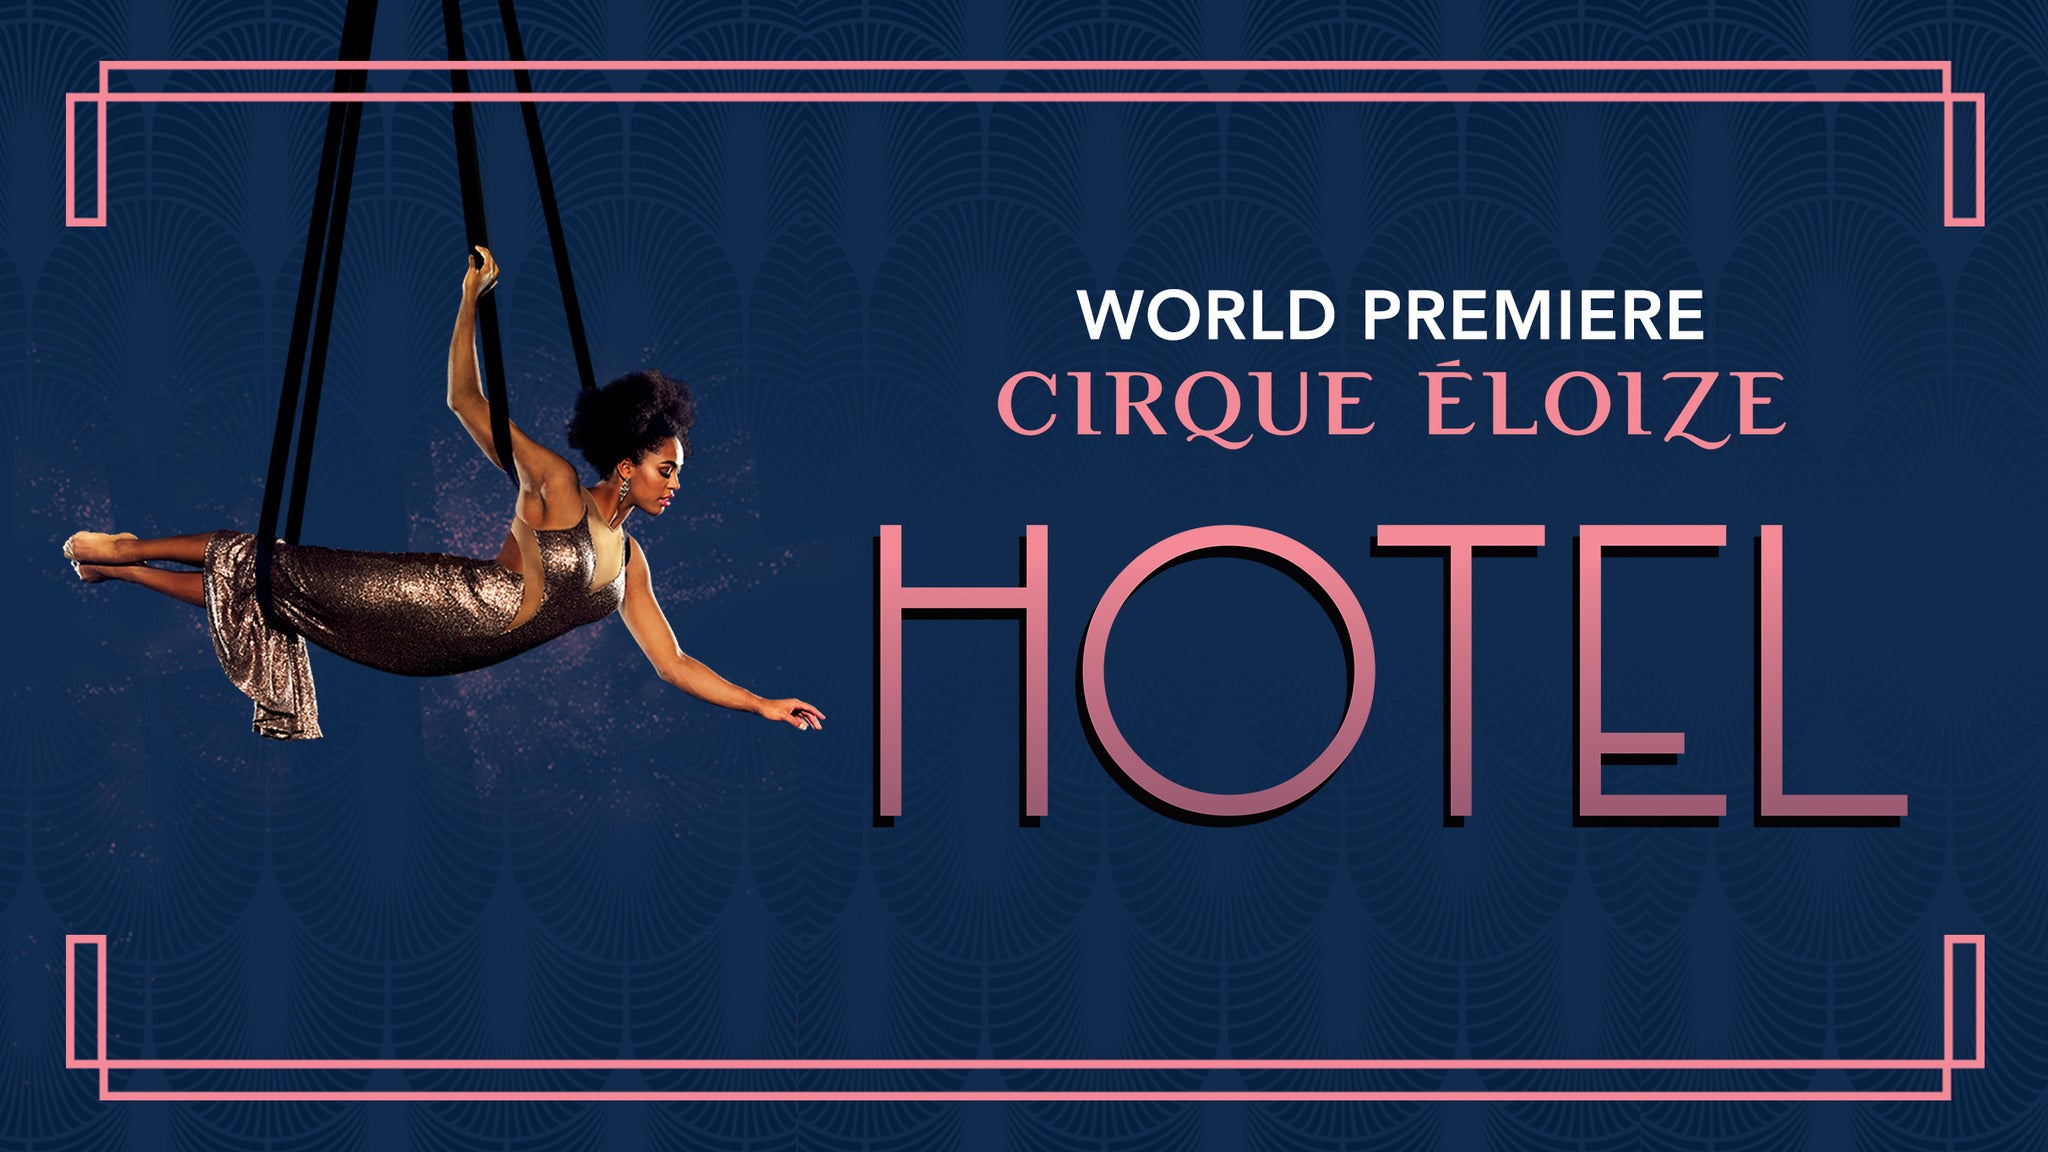 Cirque Eloize Hotel - Mashantucket, CT 06355